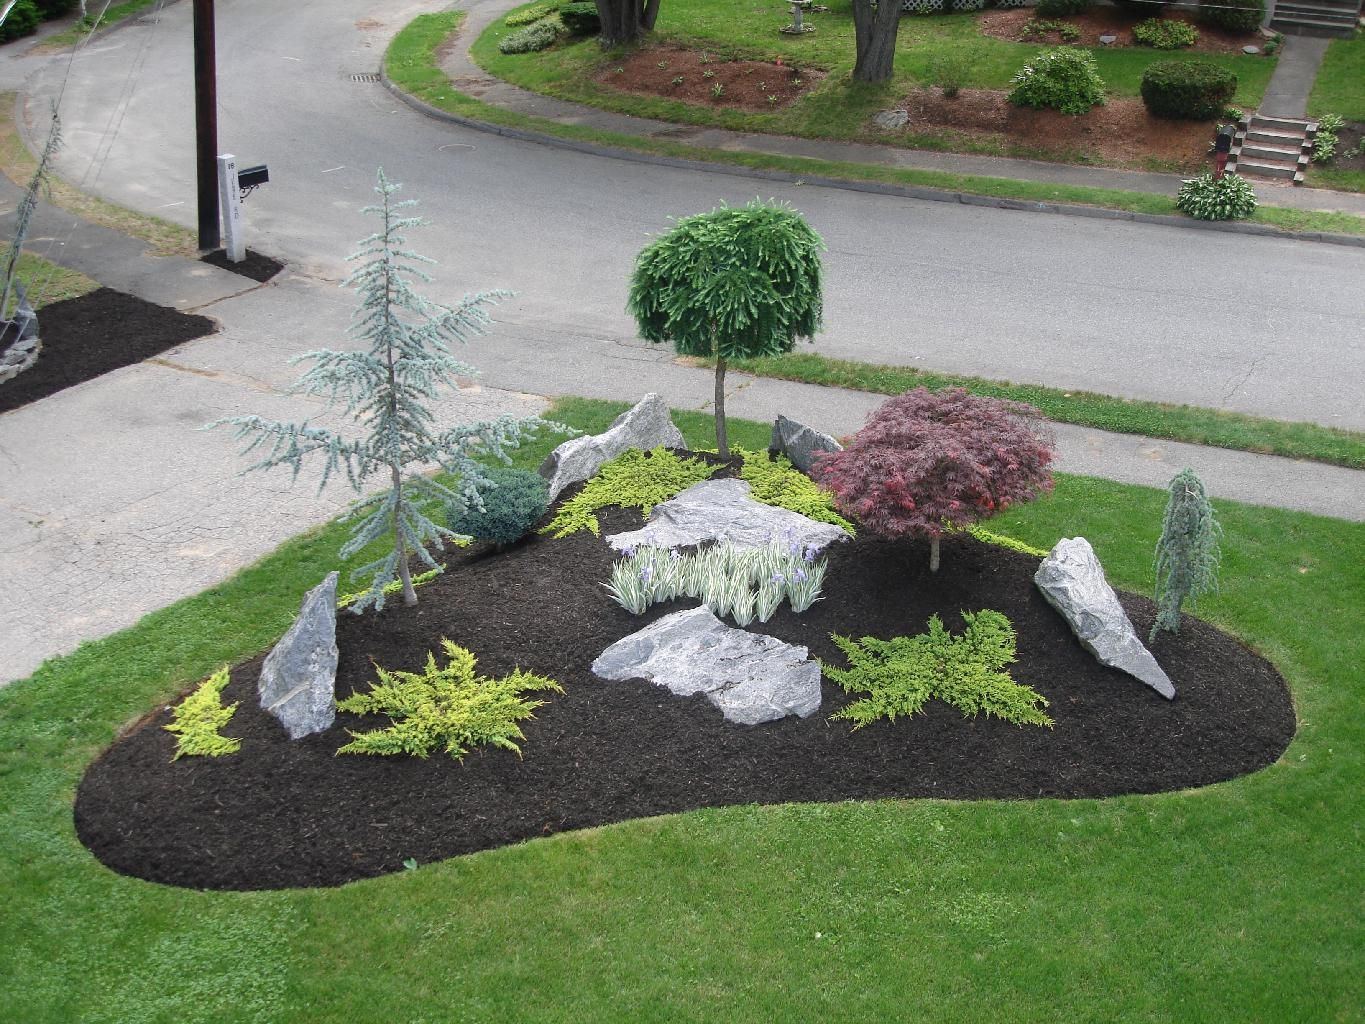 Simple landscape designs with rock beds google search for Basic landscaping